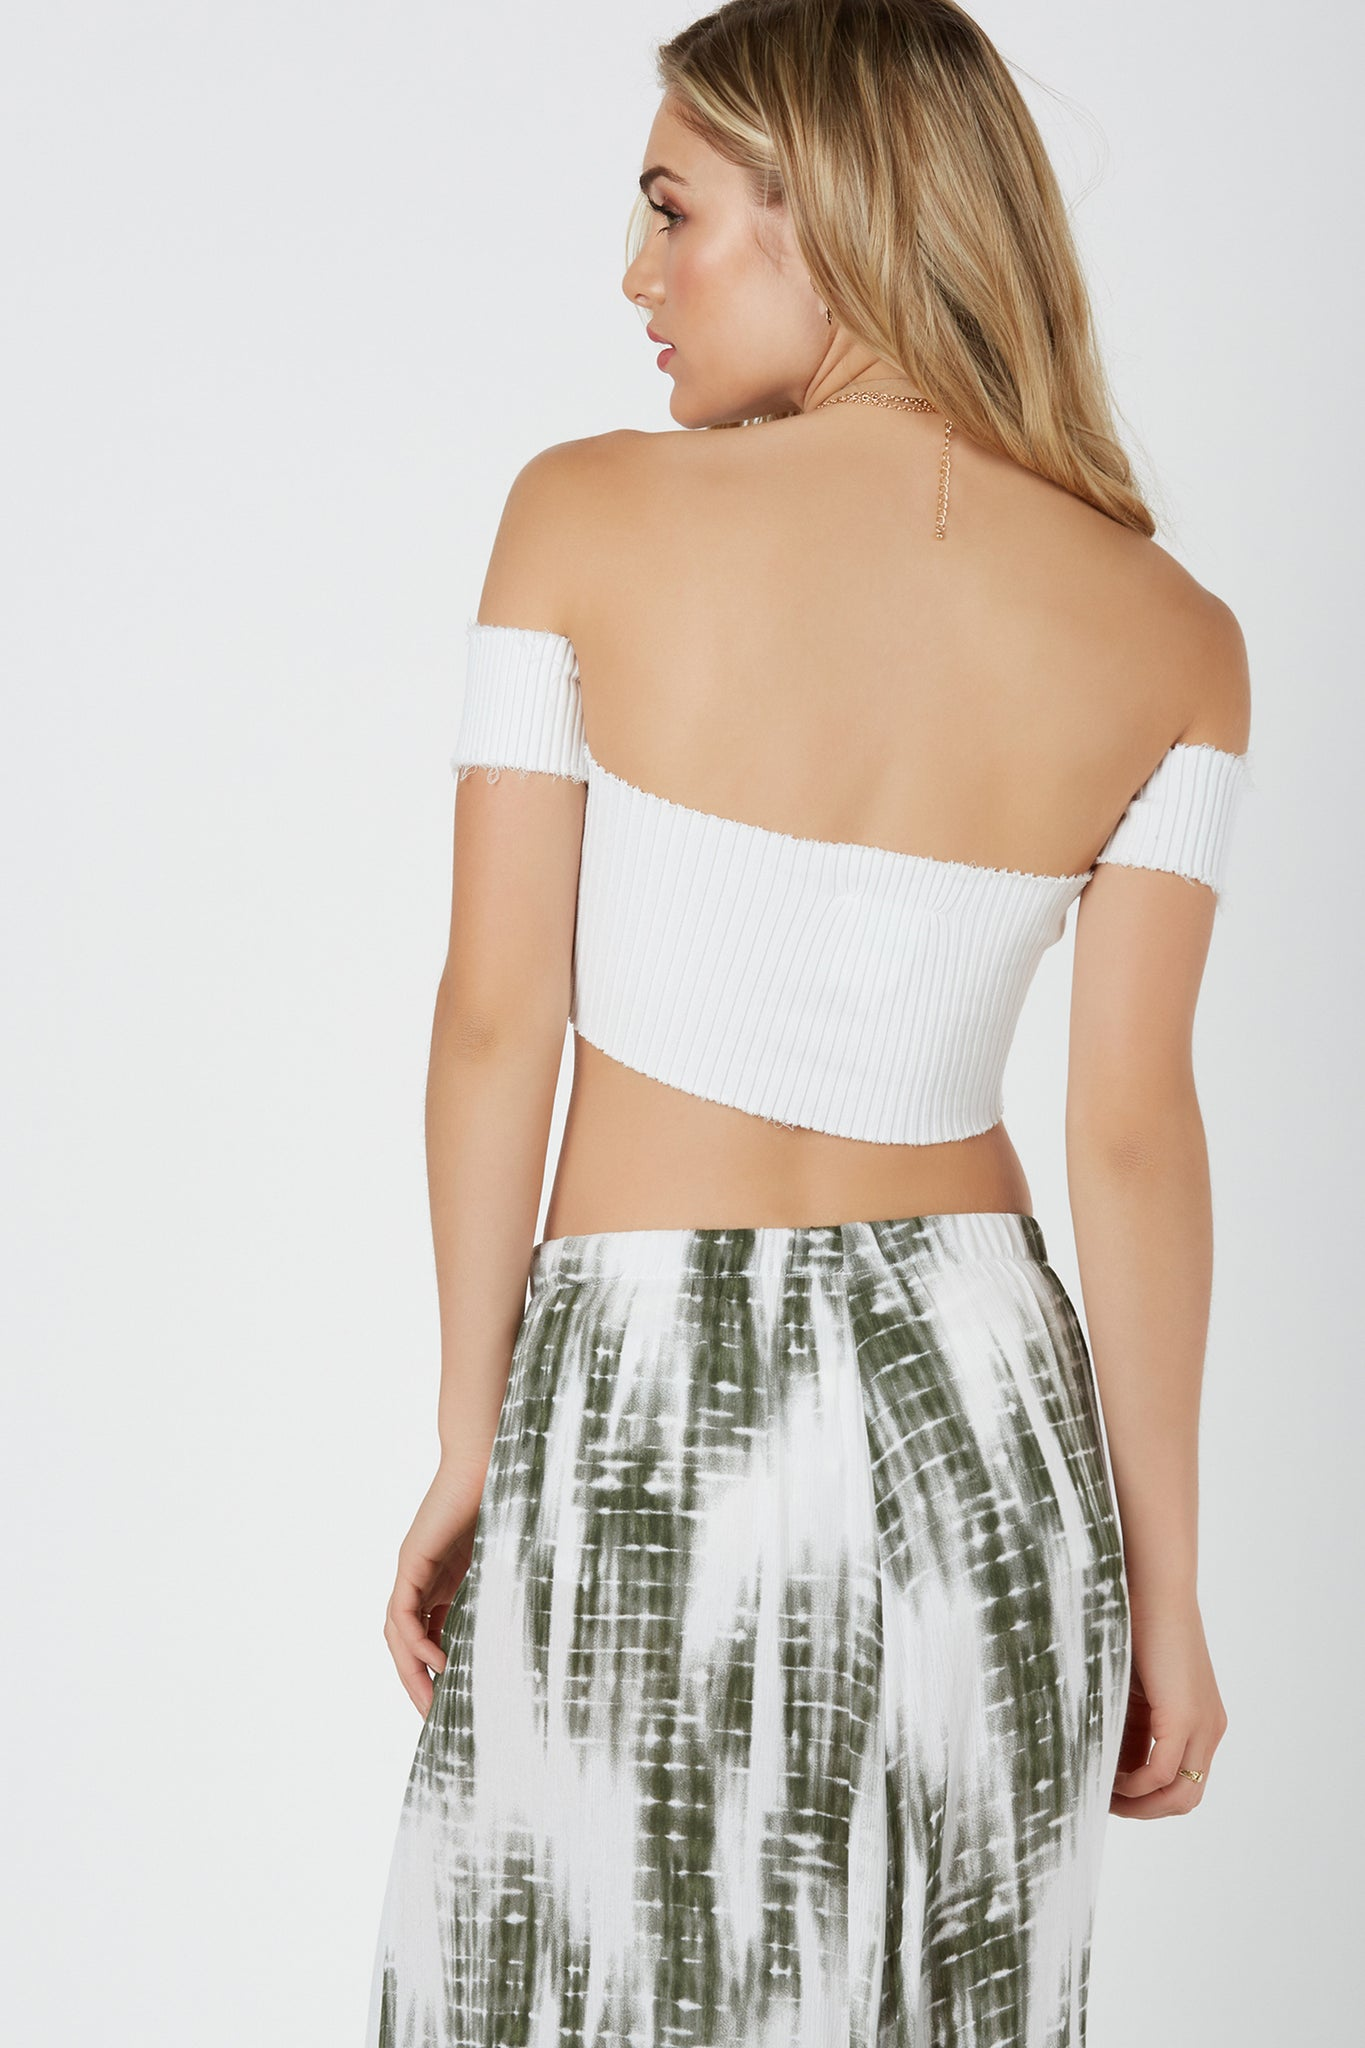 Sexy off shoulder top with U-shape wired cut out in front. Ribbed throughout for amazing stretch with raw cropped hem finish.